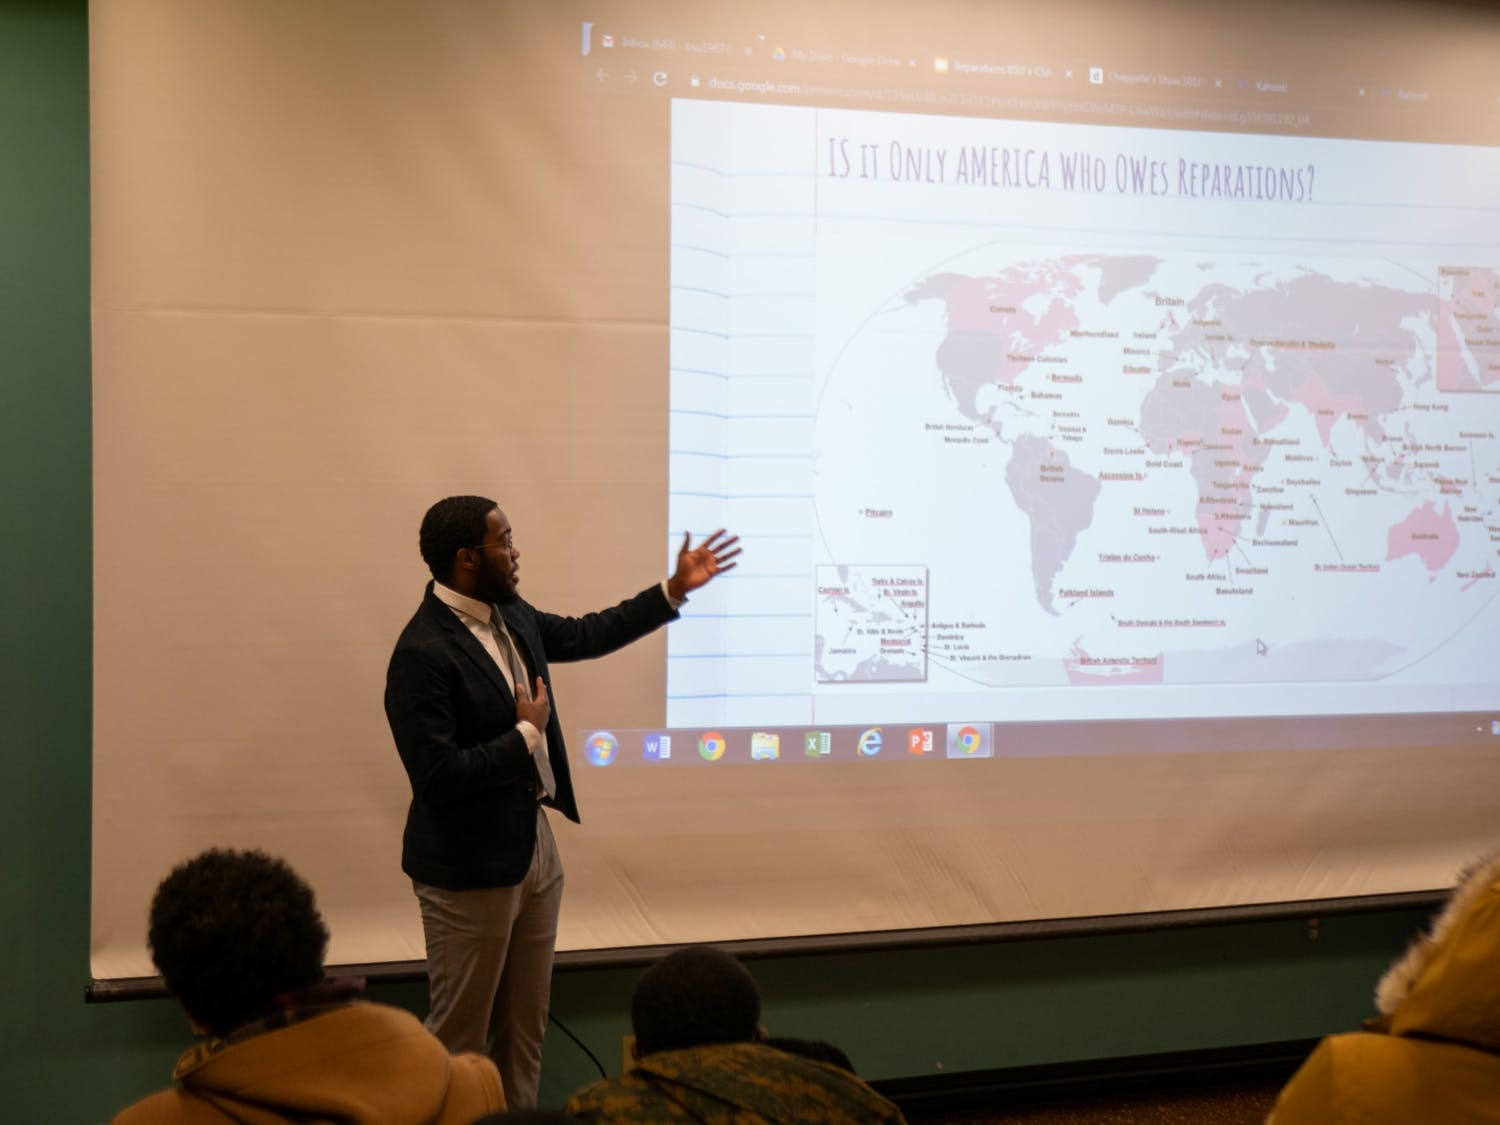 BSU and CSA presented videos by Marianne Williamson and Dr. Umar Johnson speaking about reparations. The reparations discussion was held at Student Union on Thursday.